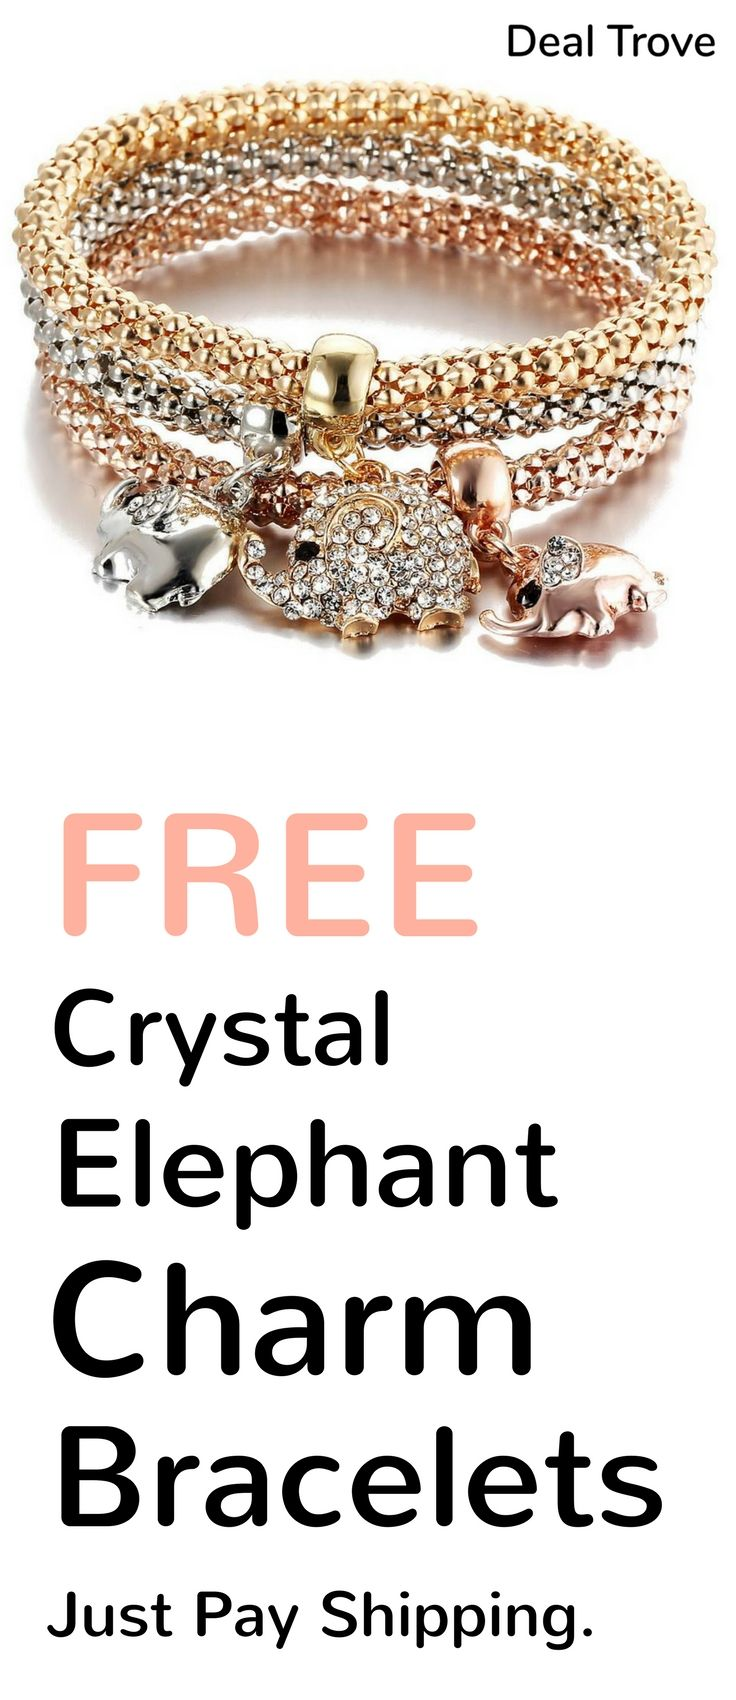 Free Jewelry Just Pay Shipping : jewelry, shipping, Crystal, Elephant, Charm, Bracelet, Great, Every, Lover., Wherever, Unique, Stylish, Smykker,, Elefanter